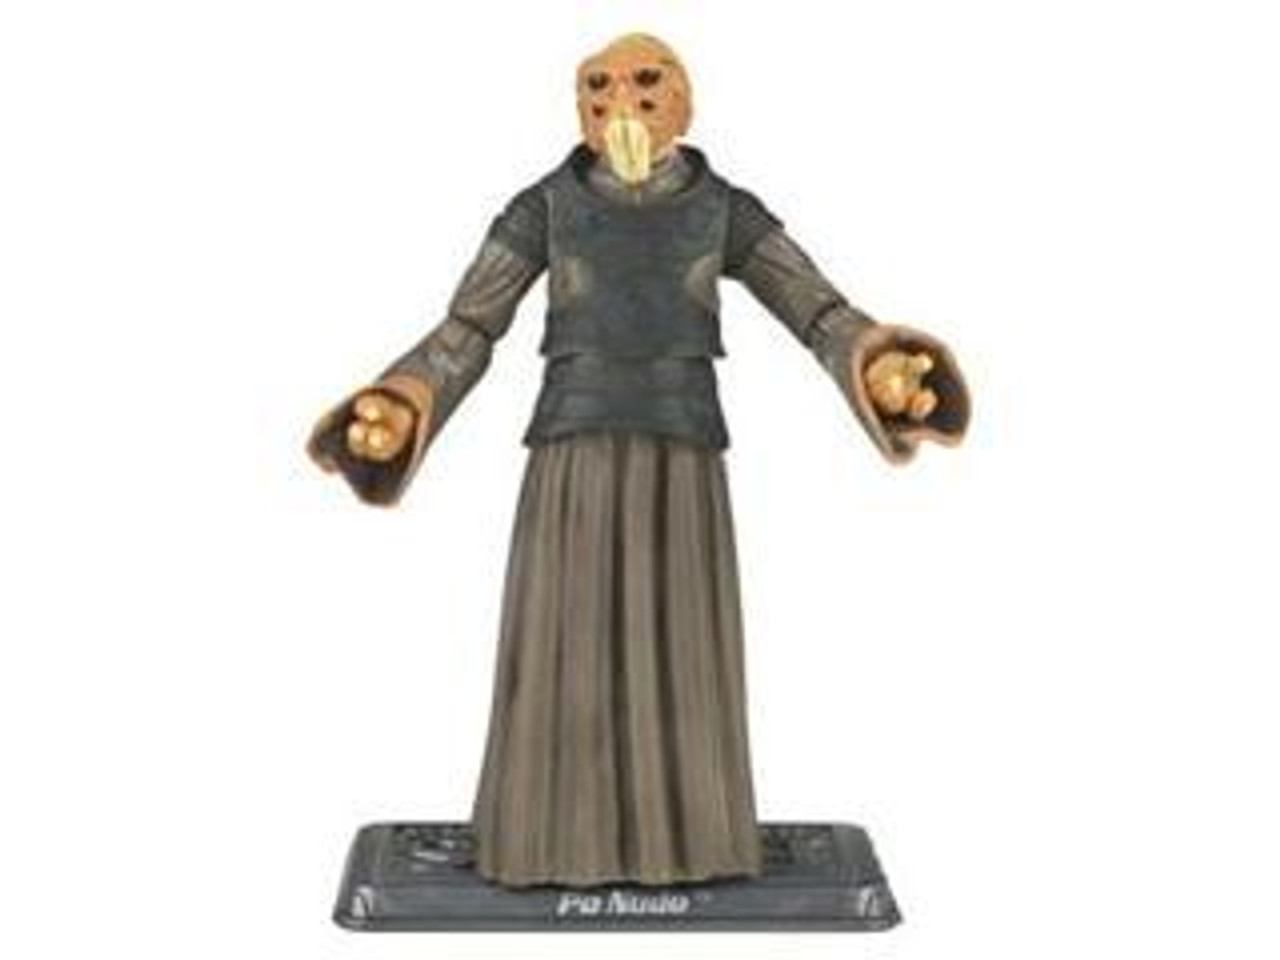 Star Wars Revenge of the Sith 30th Anniversary 2008 Wave 1 Separatist Po Nudo Action Figure #7